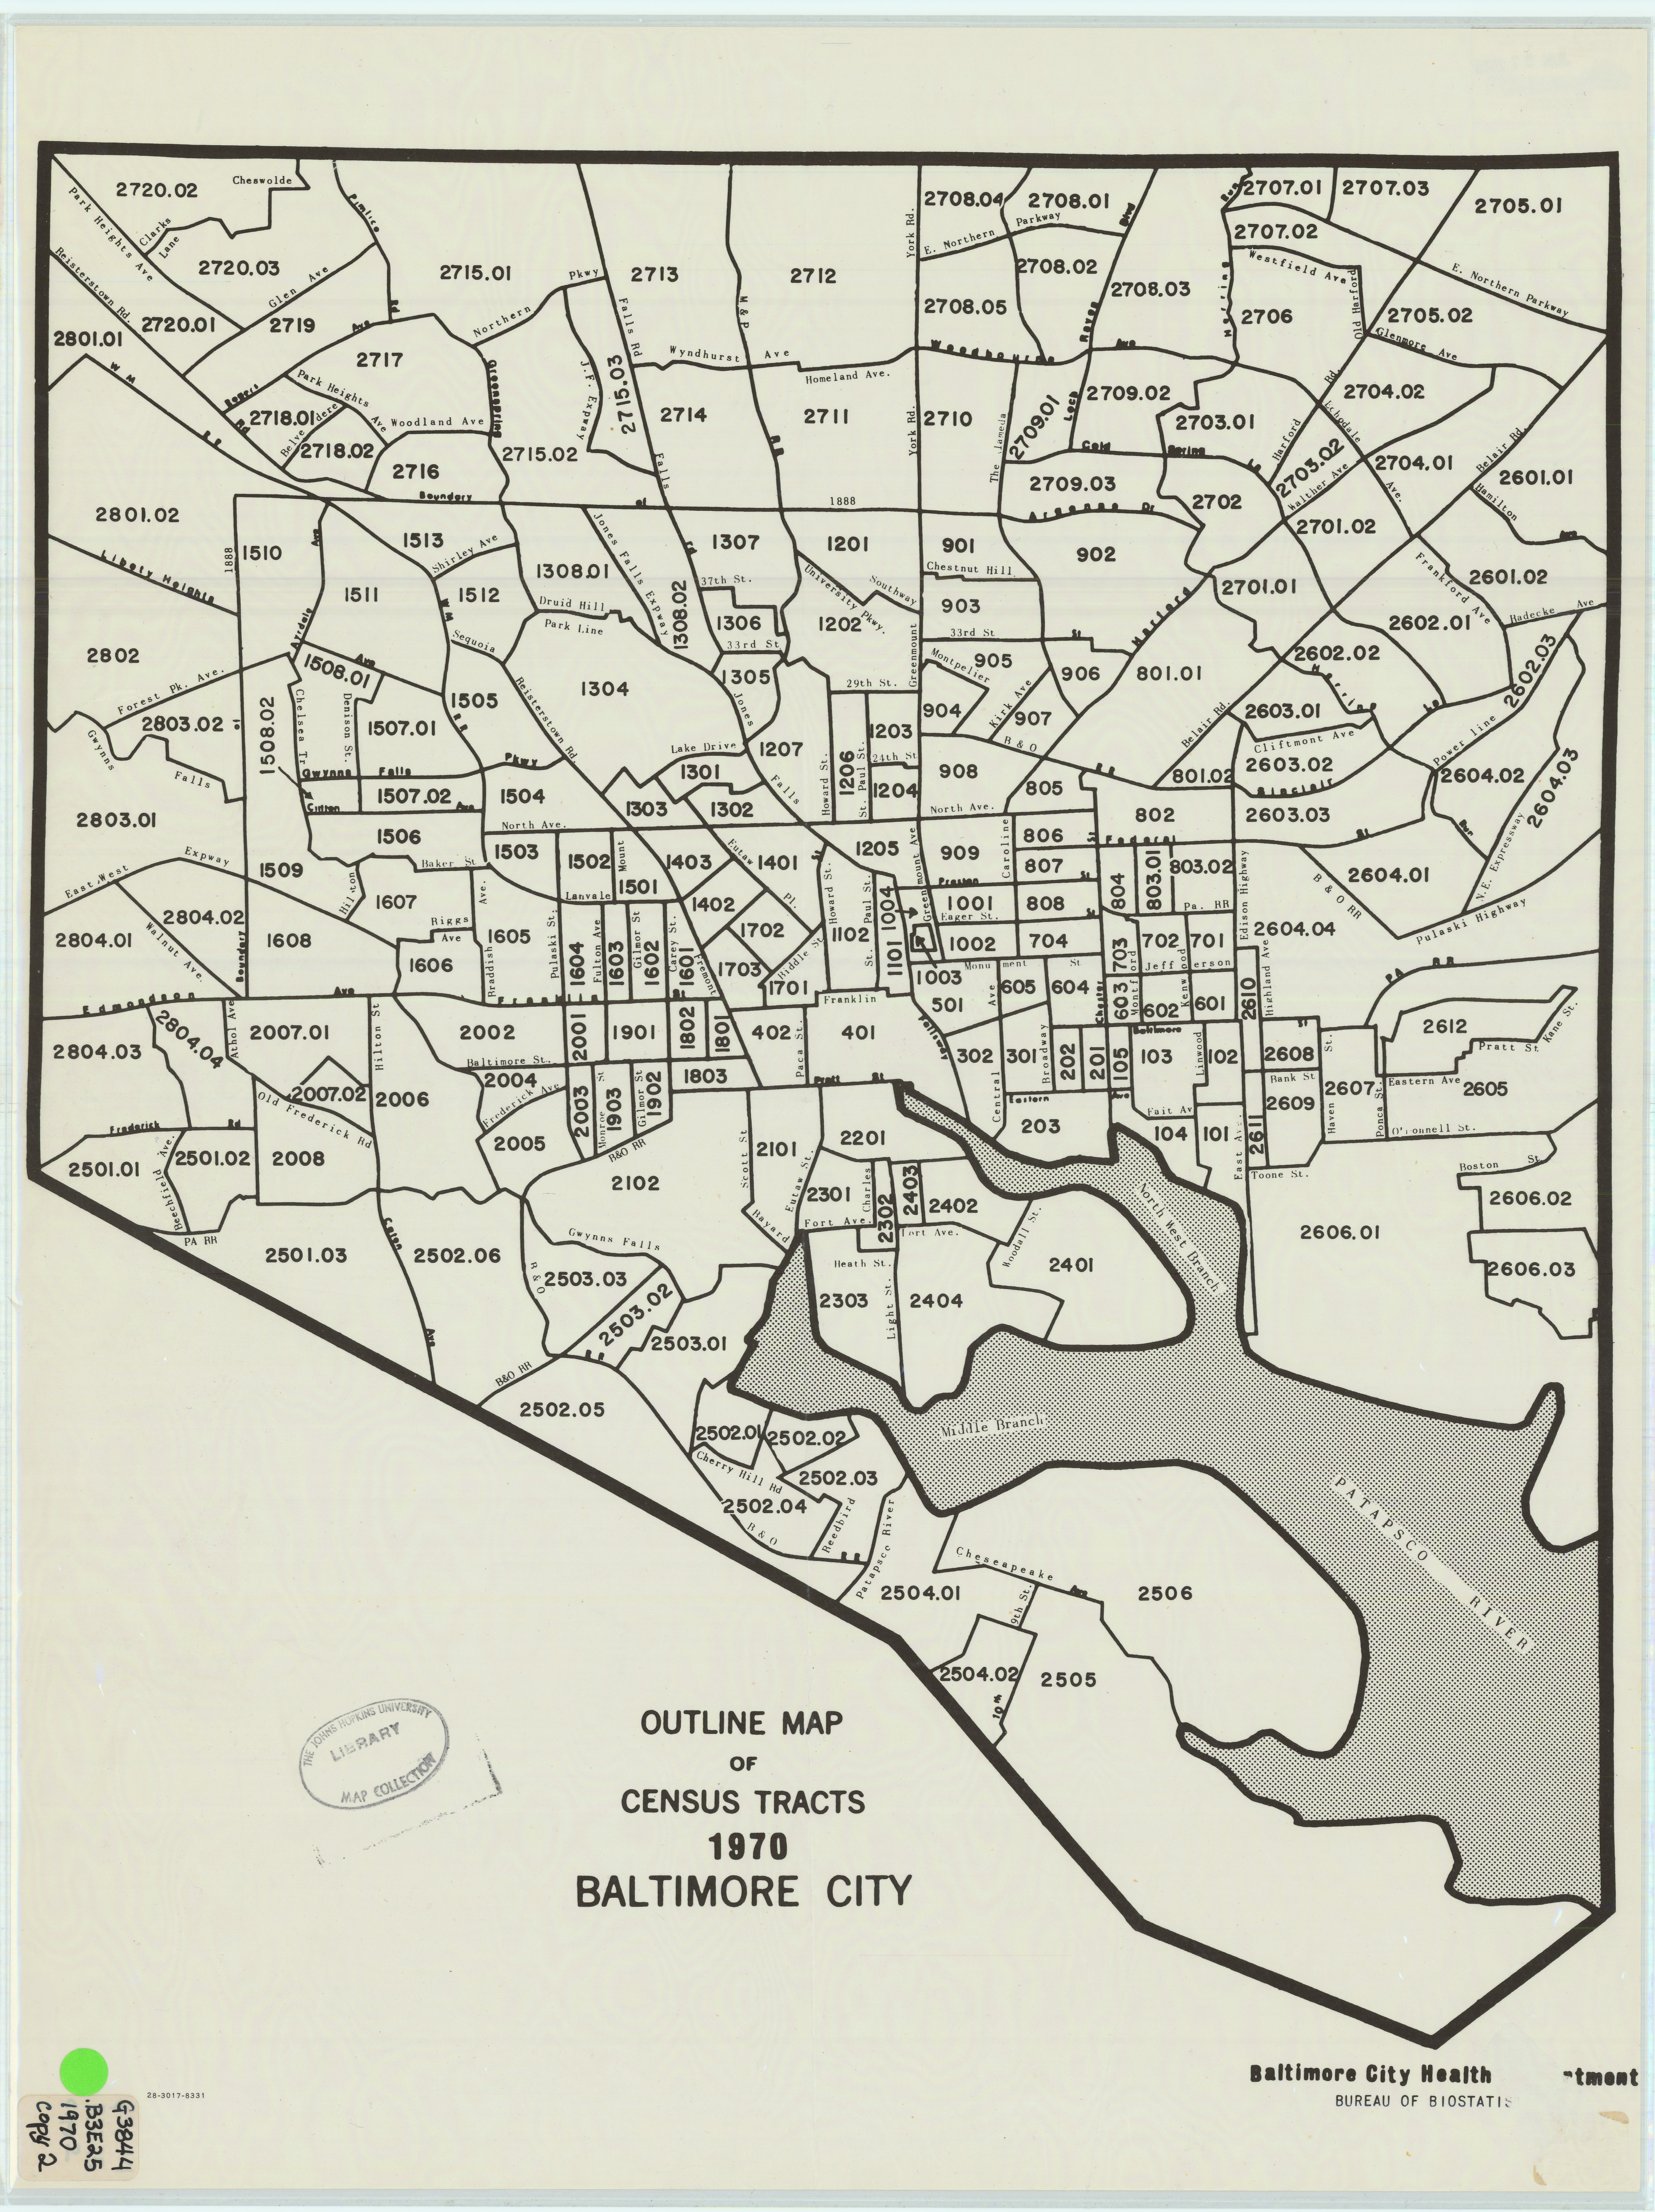 Baltimore City Map Outline Map of Census Tracts 1970 Baltimore City Baltimore City Map